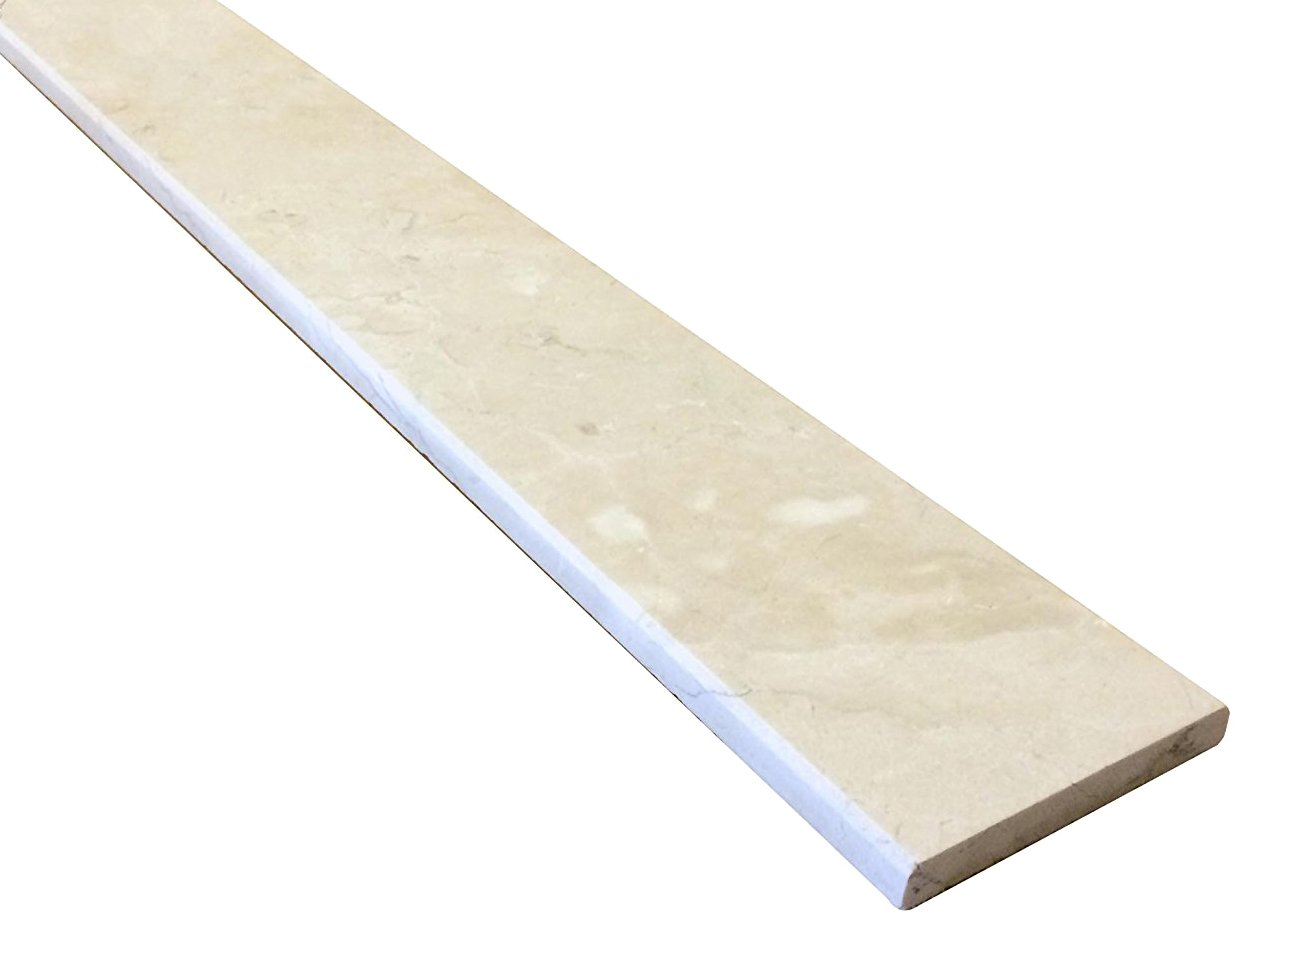 Vogue Tile Crema Marfil Beige Marble Threshold (Marble Saddle) - Polished - (6'' x 36'') by Vogue Tile (Image #3)